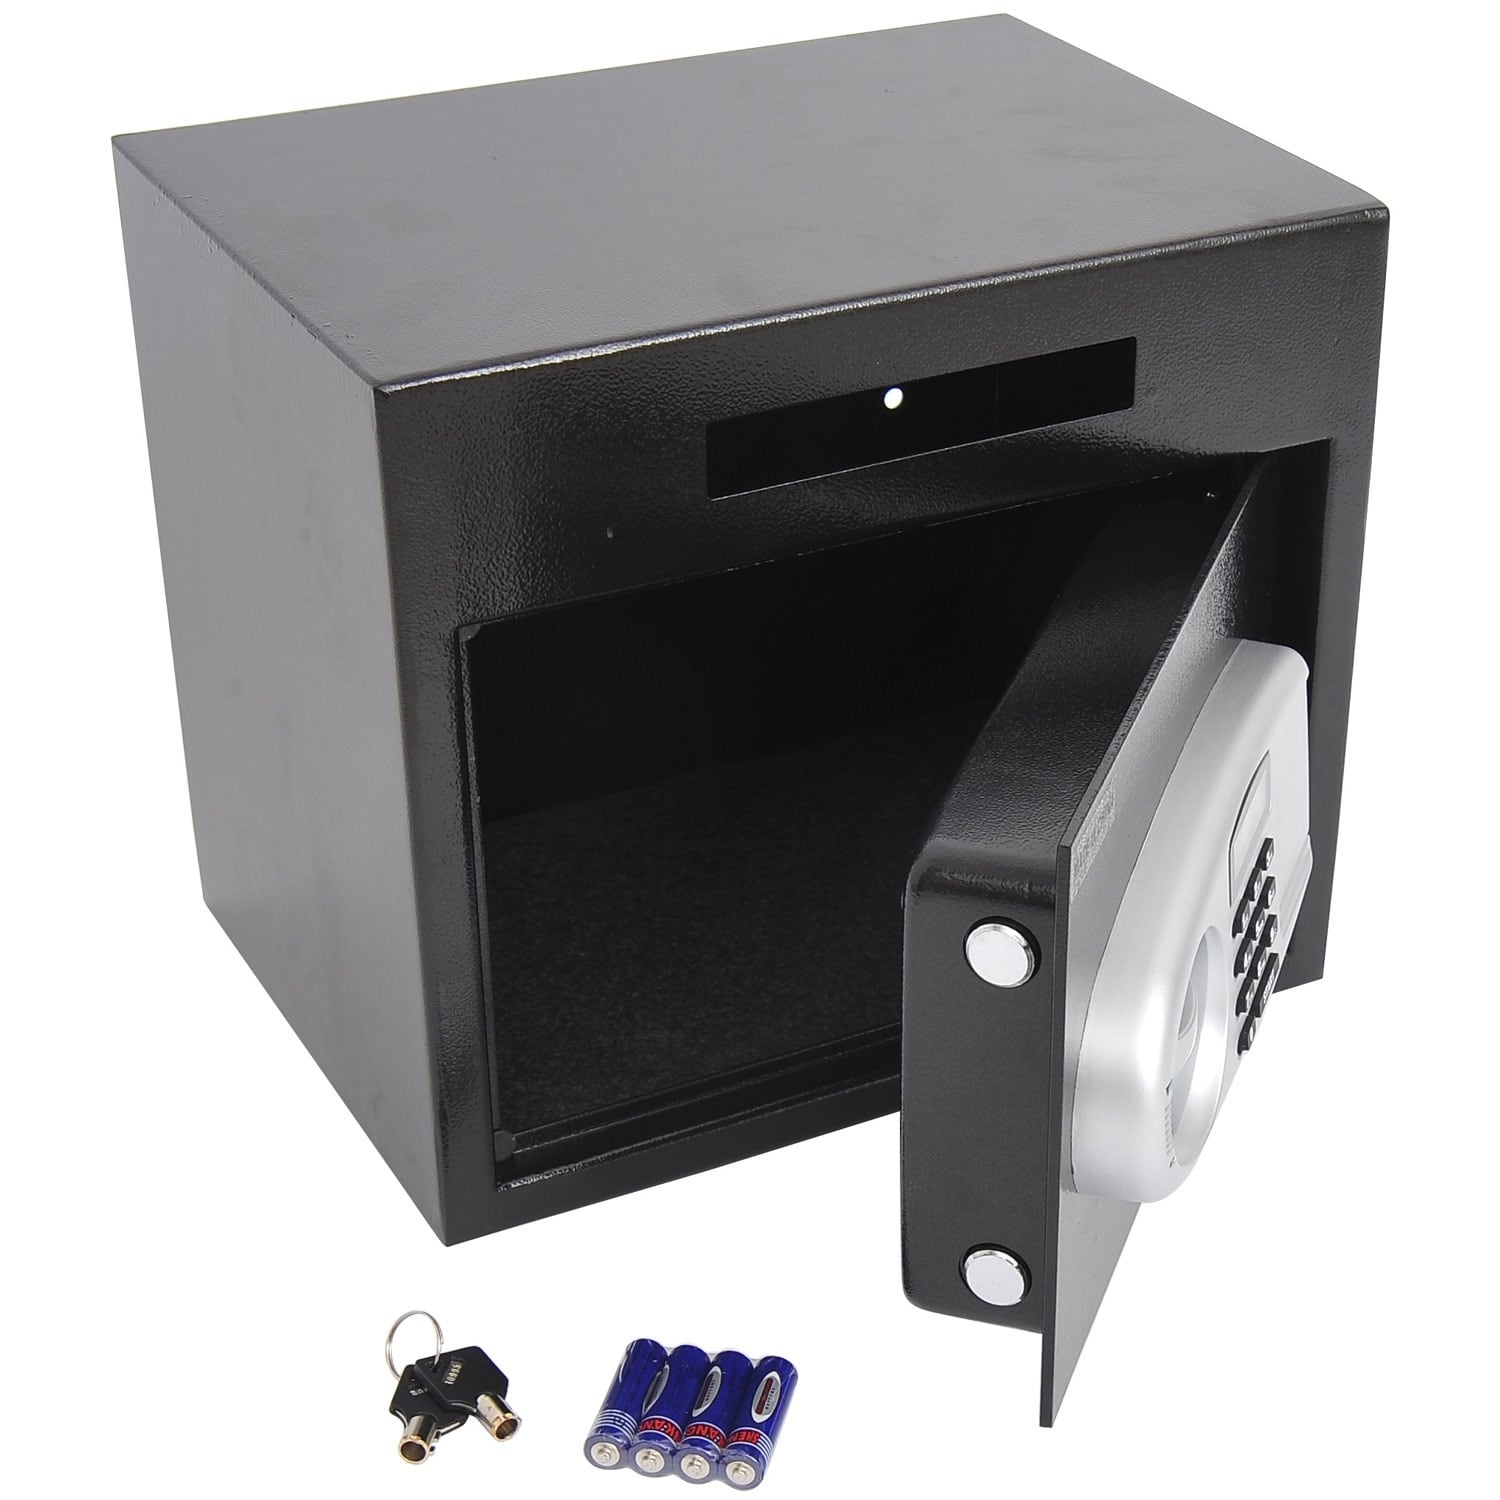 Homcom Electronic Digital Home Security Safe Box On Free Shipping Today 18038337